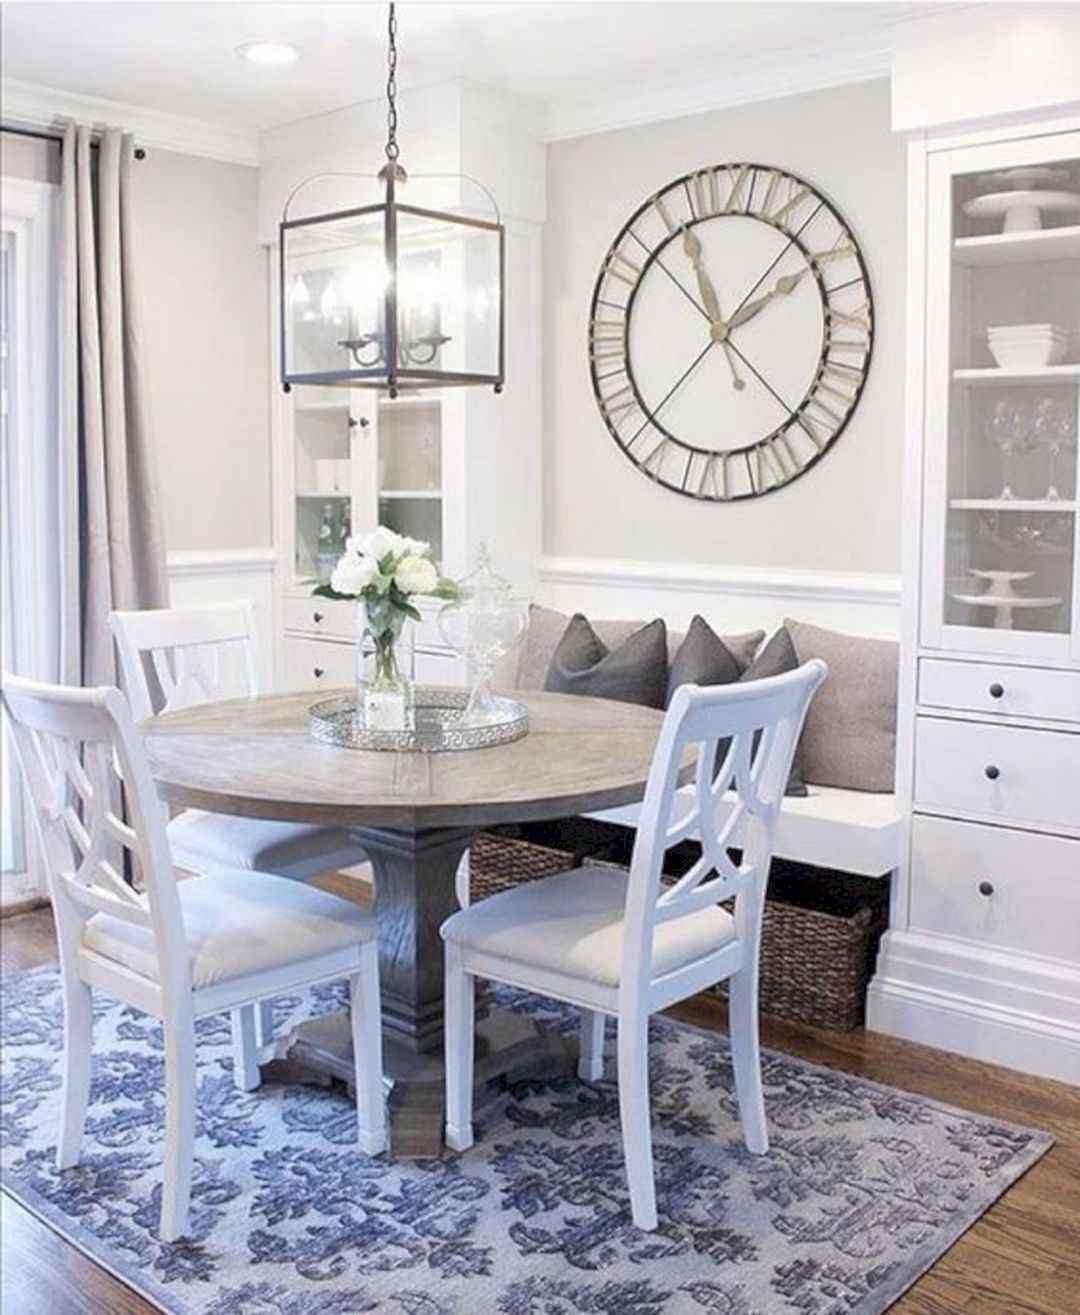 32 Elegant Ideas For Dining Rooms: 75 Simple And Minimalist Dining Table Decor Ideas